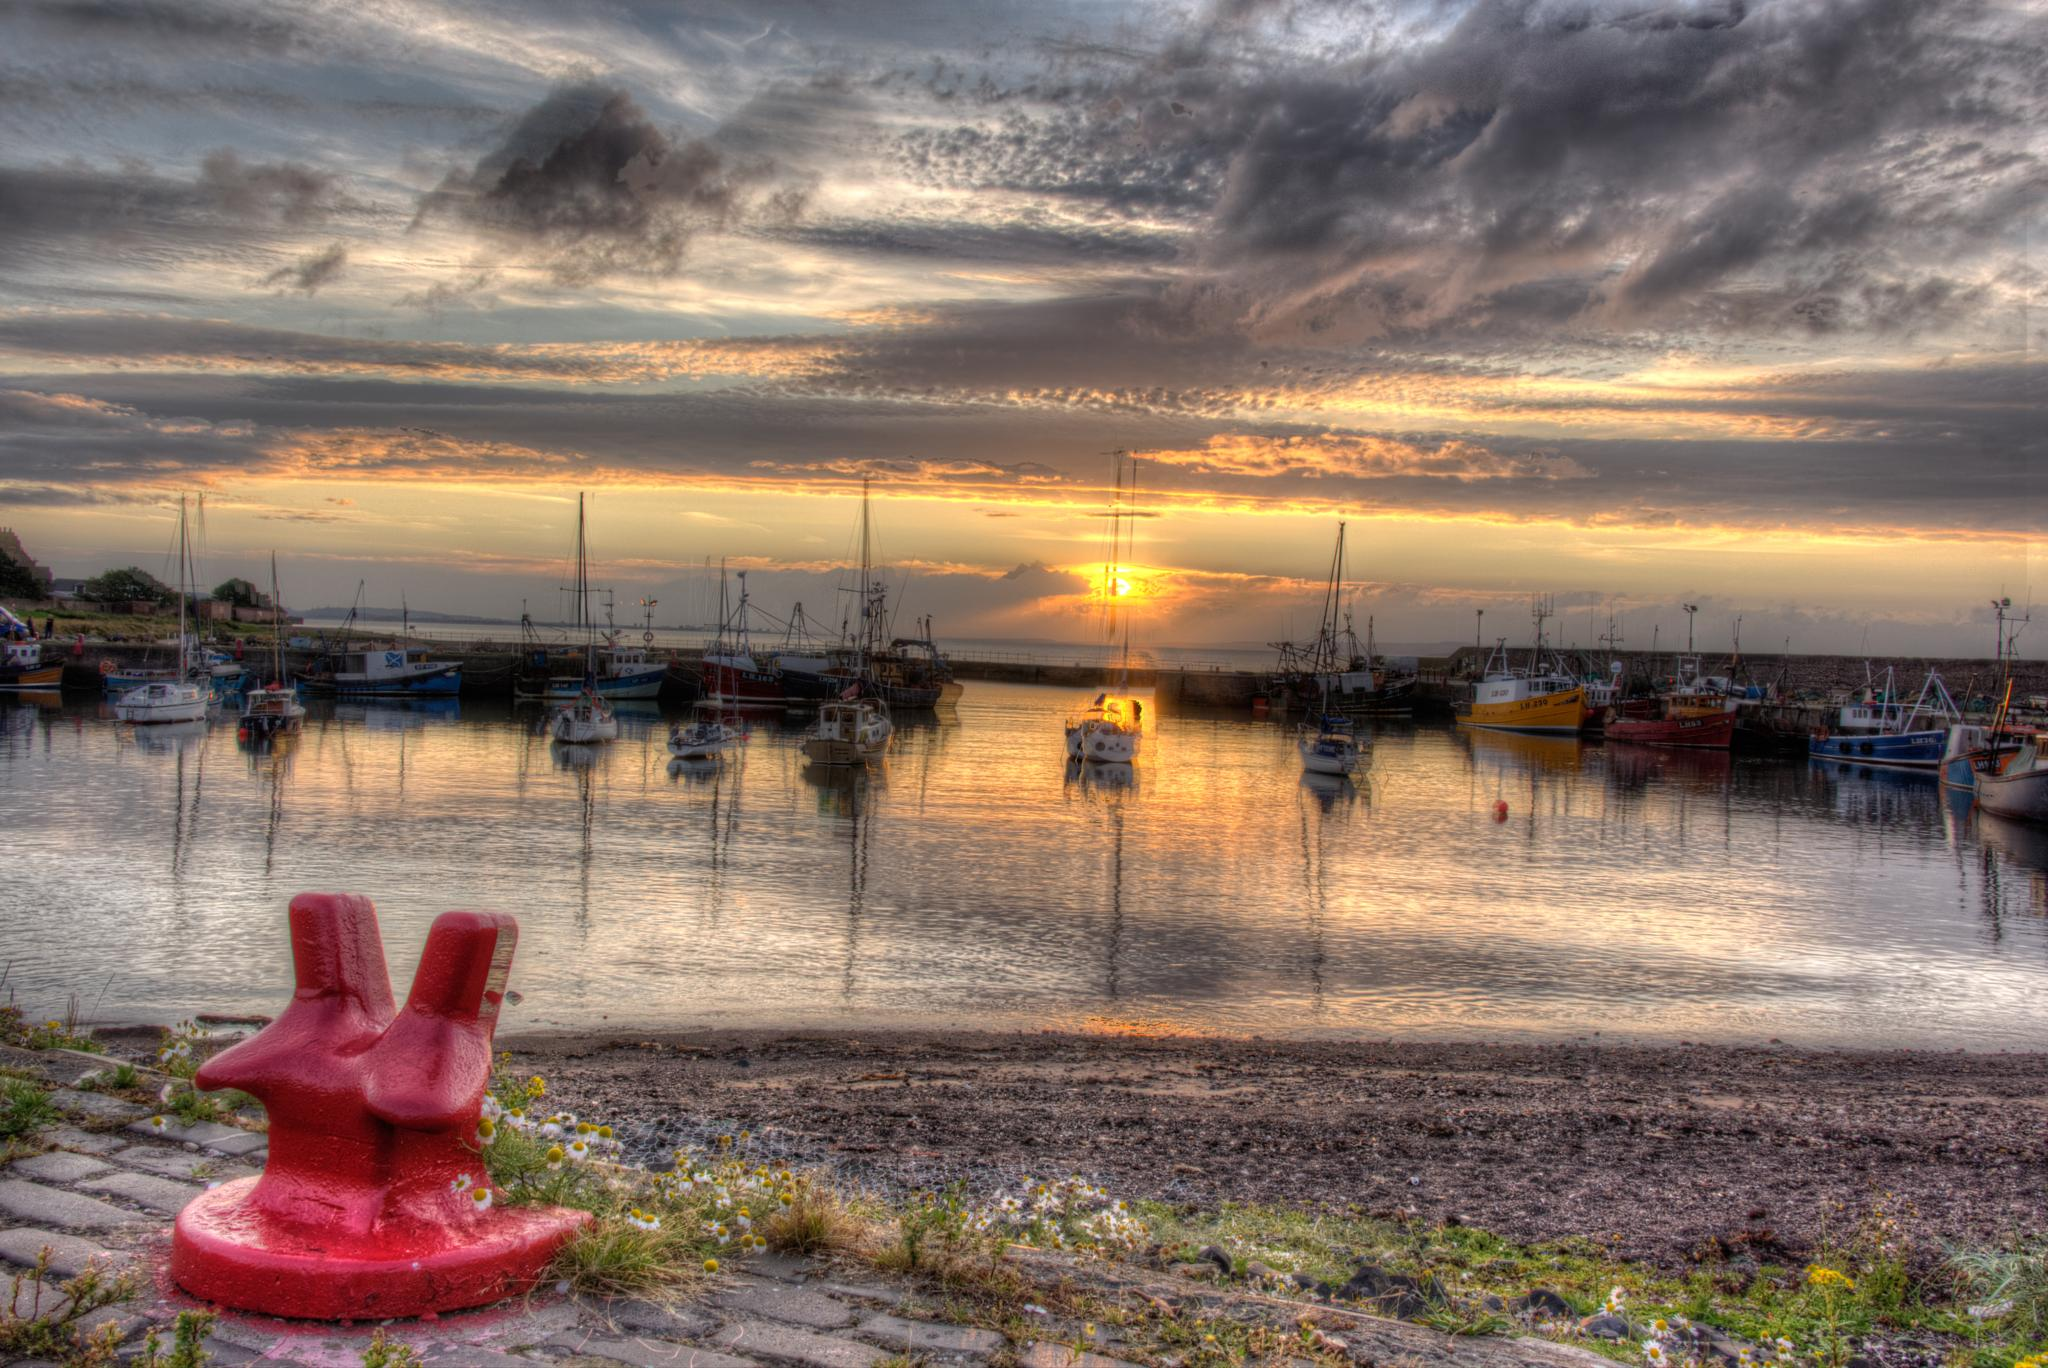 Port Seton Sunset by lawson mcculloch